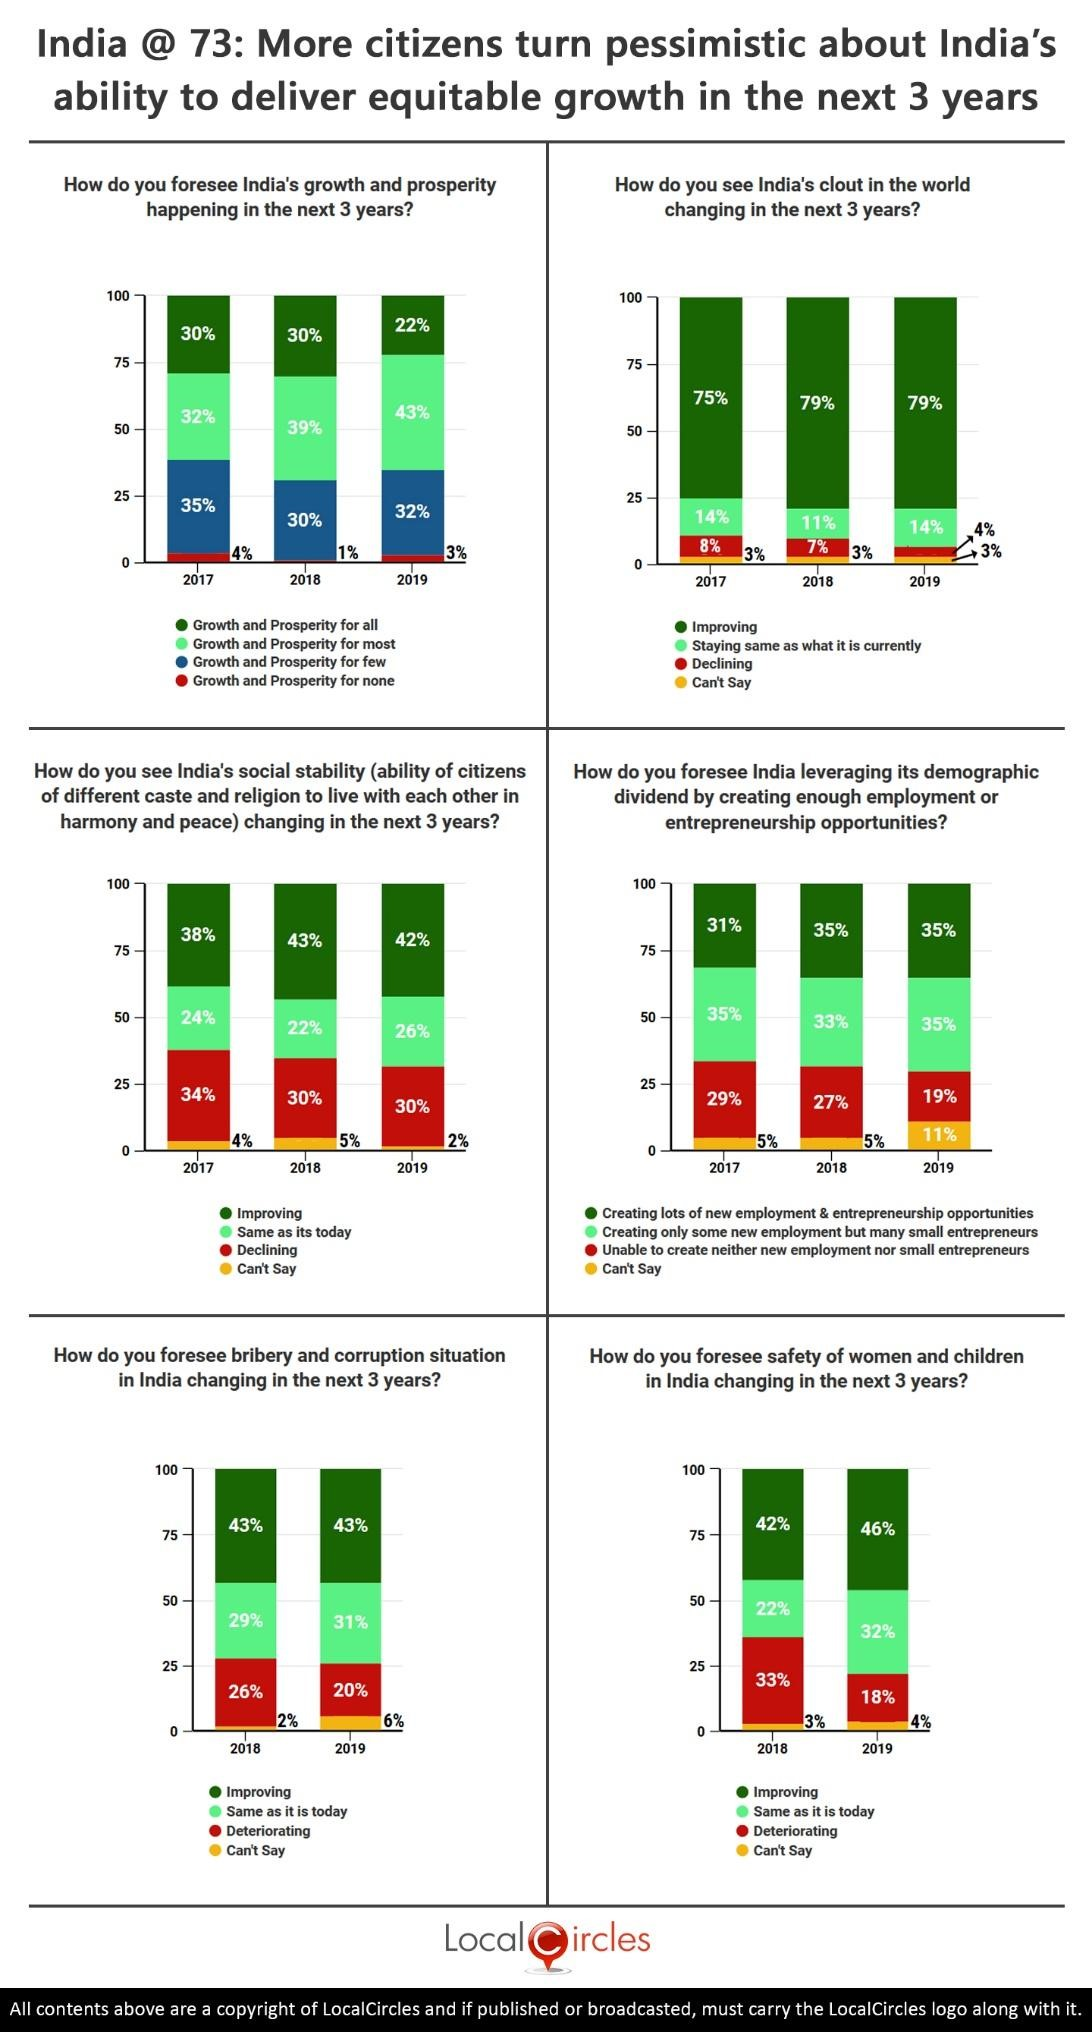 Comparison summary: More citizens turn pessimistic about India's ability to deliver equitable growth in the next 3 years